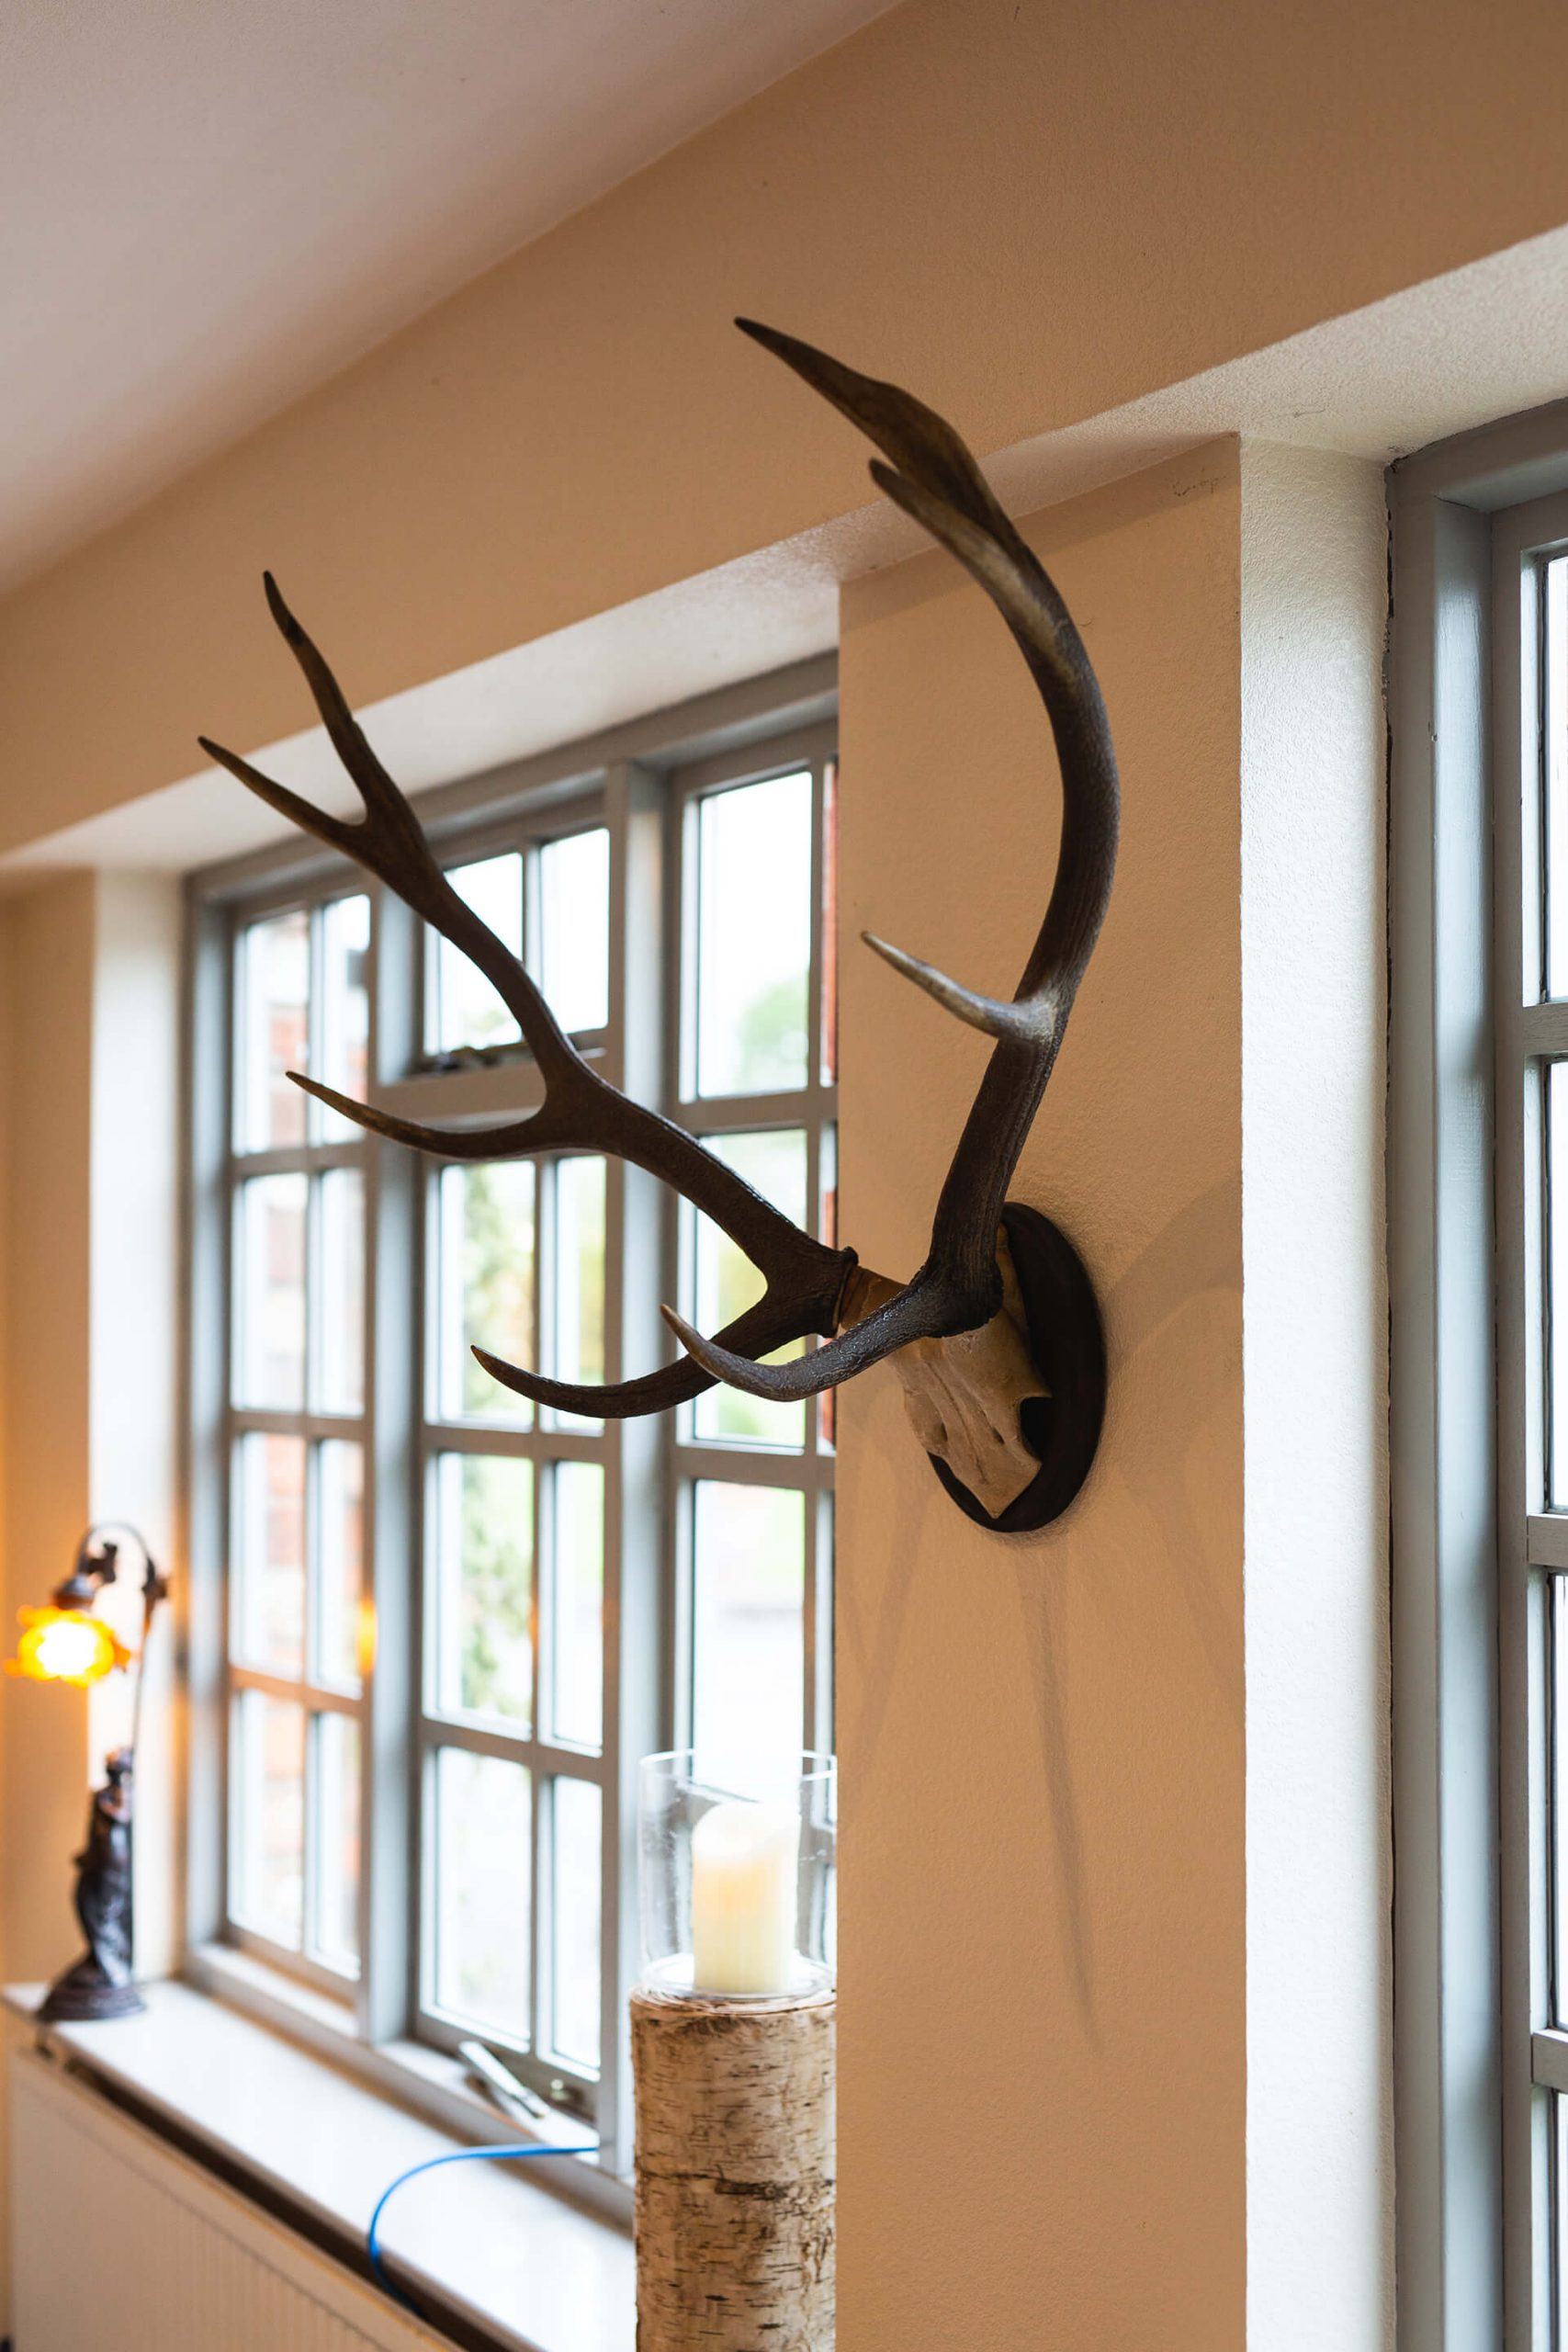 Antlers hanging on a wall